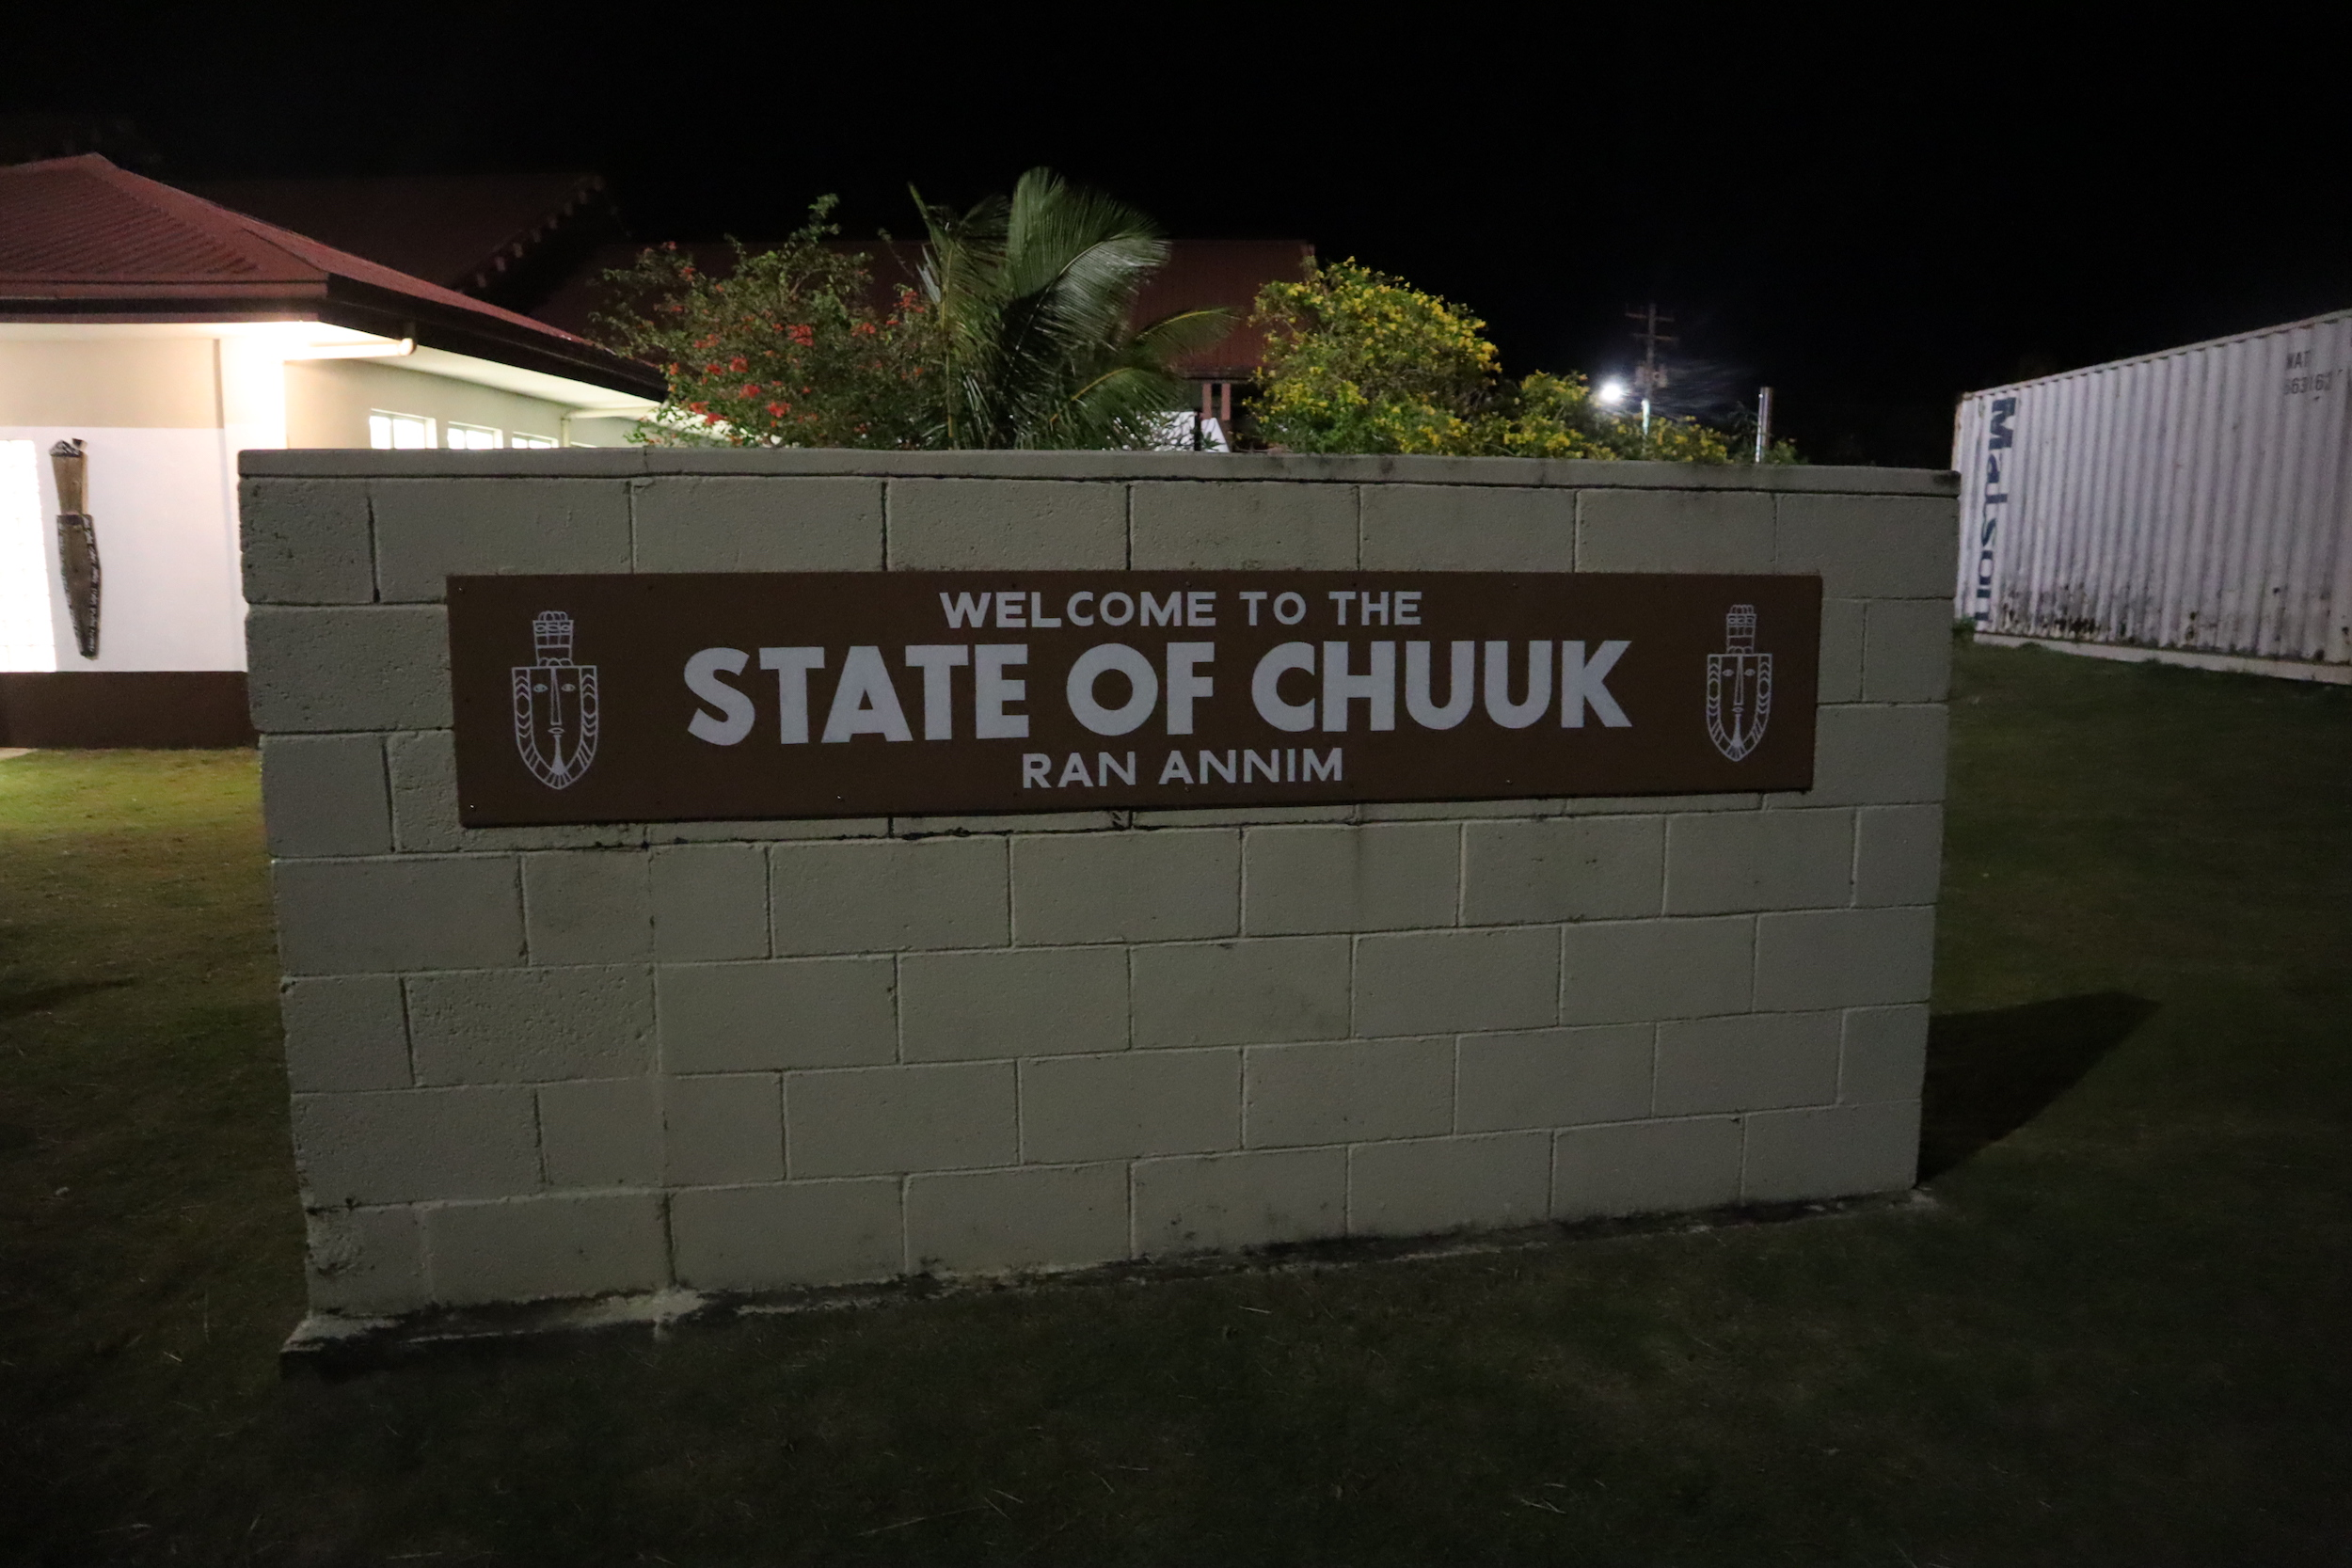 Welcome to the State of Chuuk